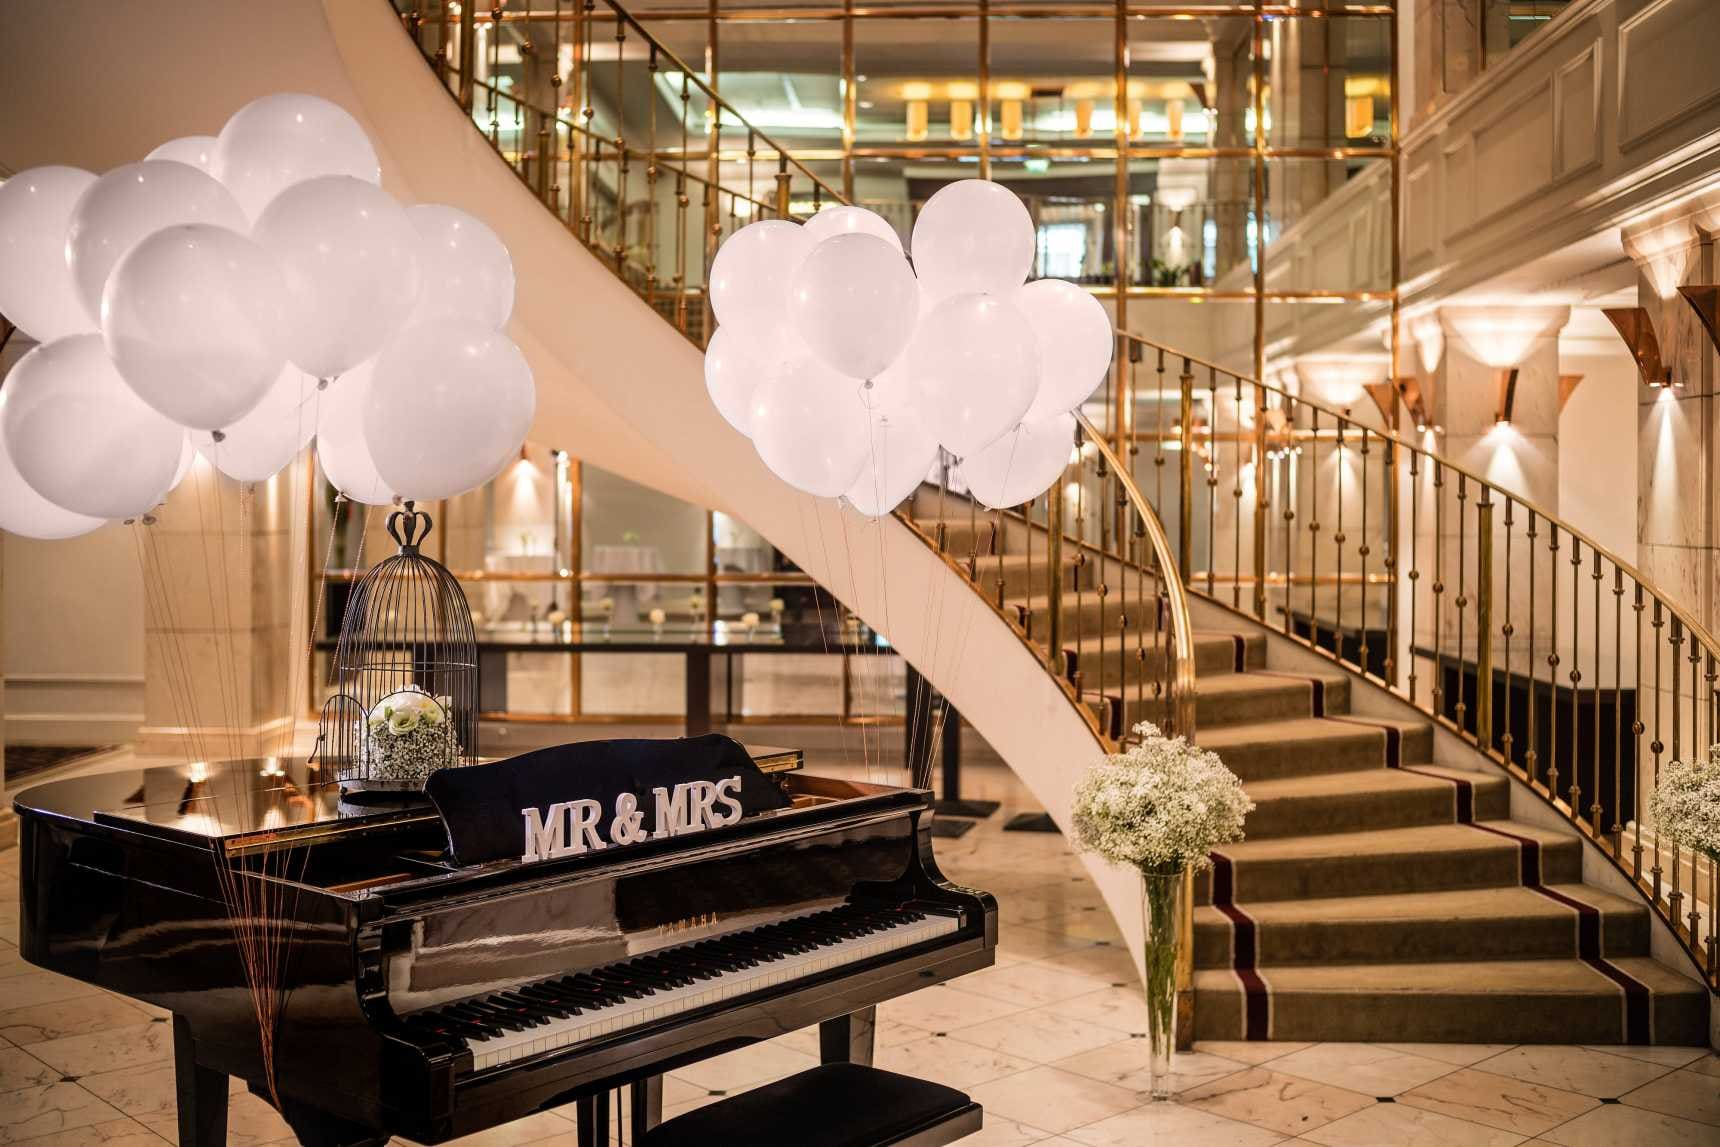 Piano with balloons and stair case